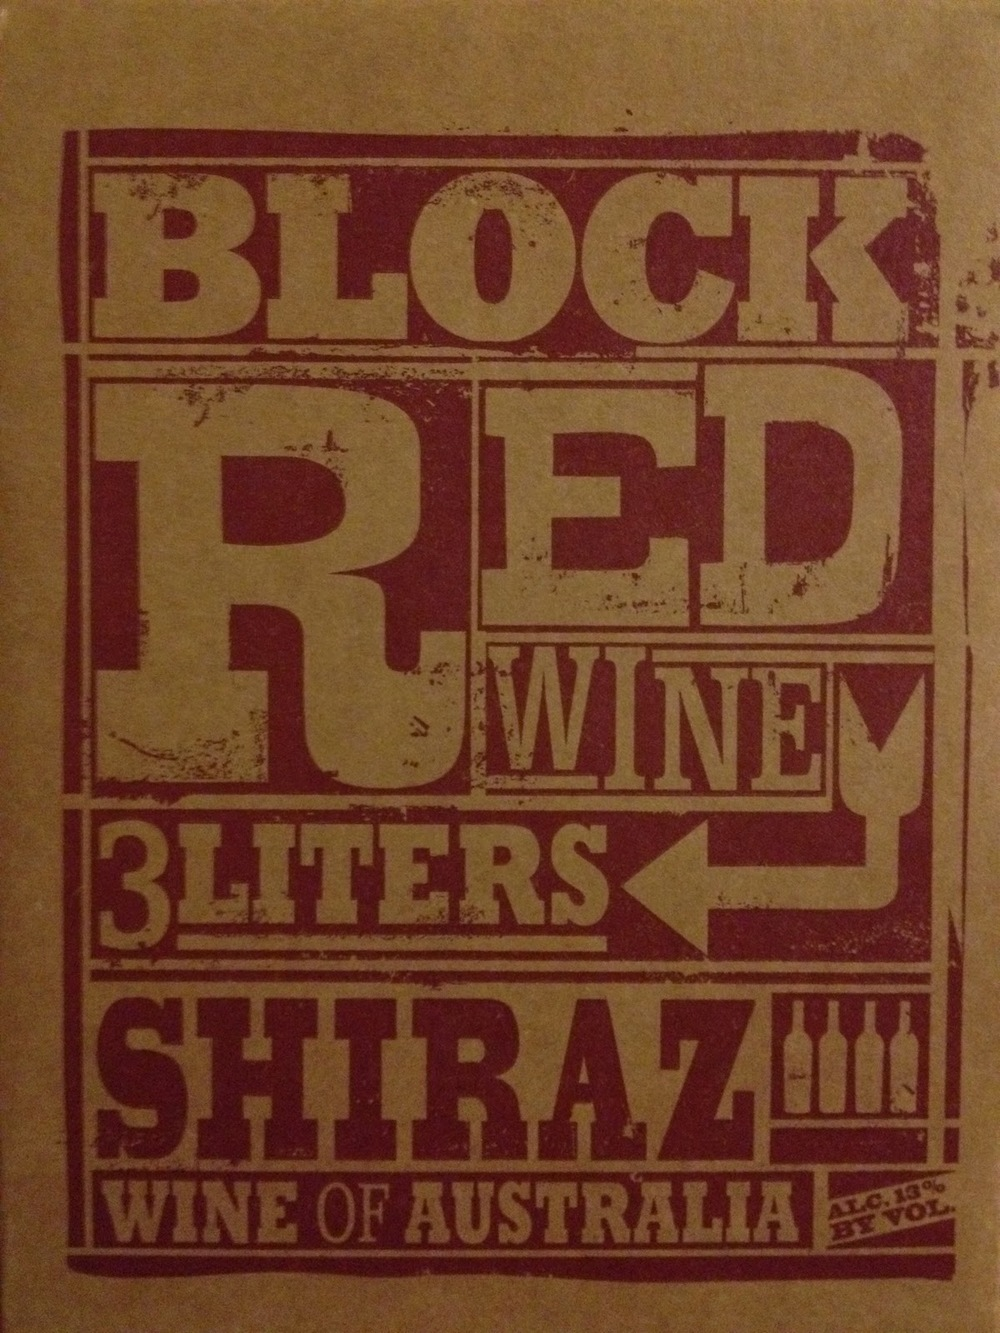 Trader Joes Block Red Shiraz photo.JPG